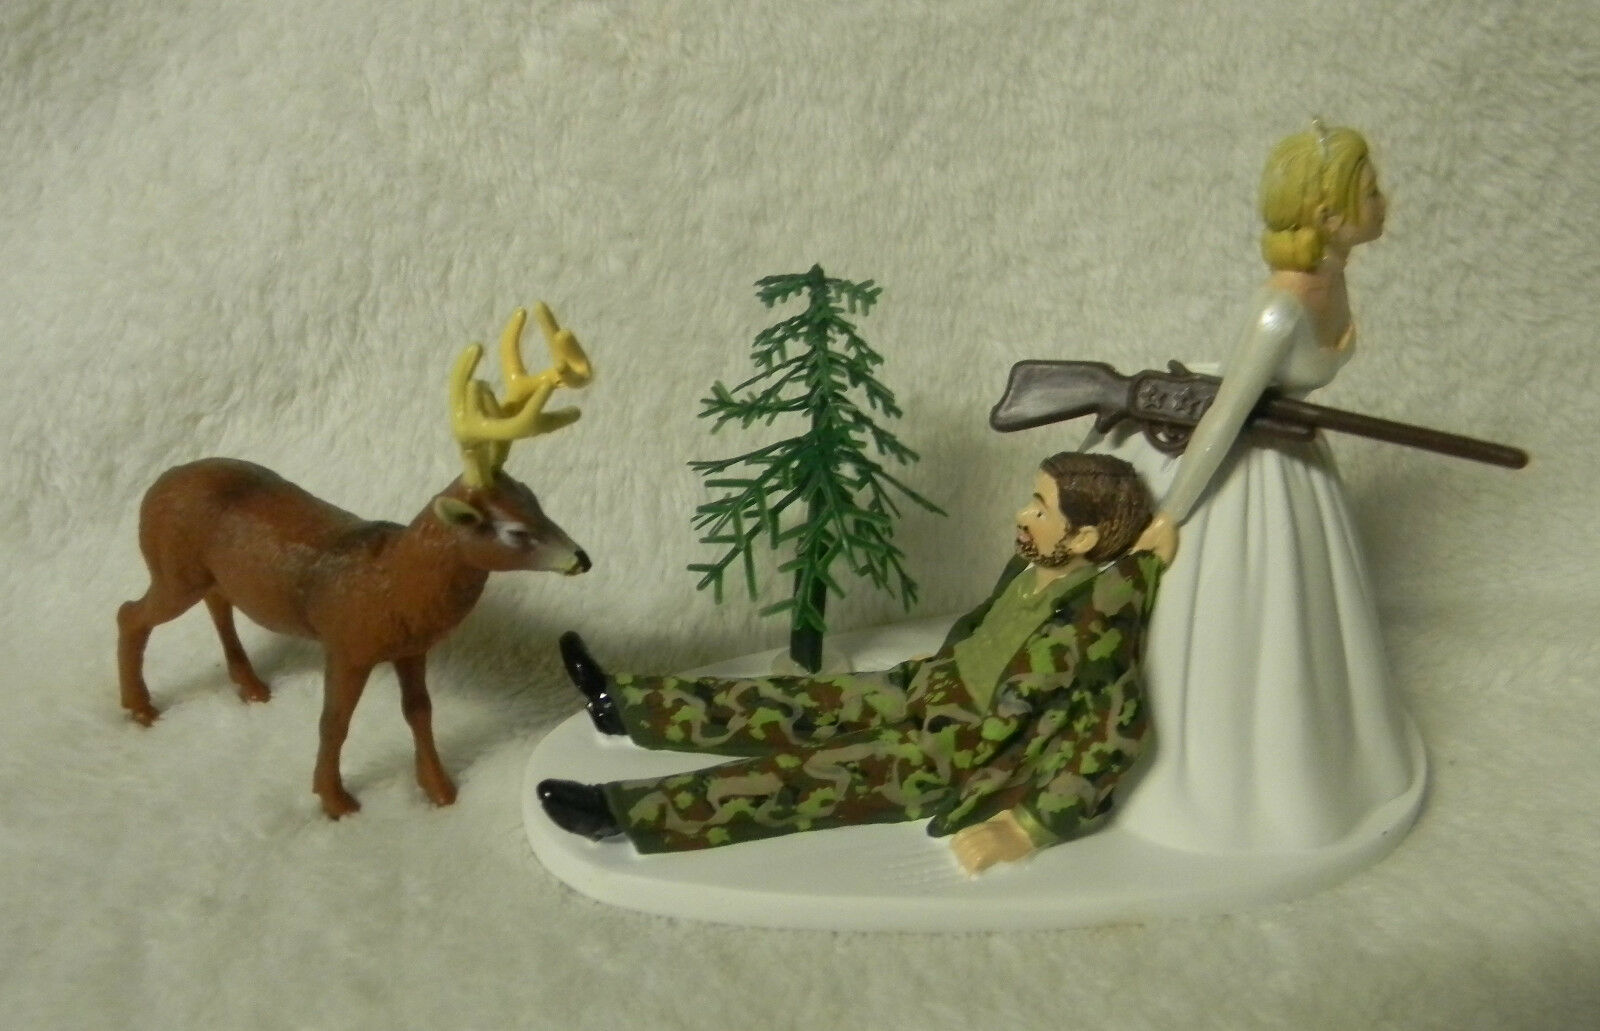 Mariage Camo plouc du Cerf Chasse fusil chasseur Groom avec barbe cake topper